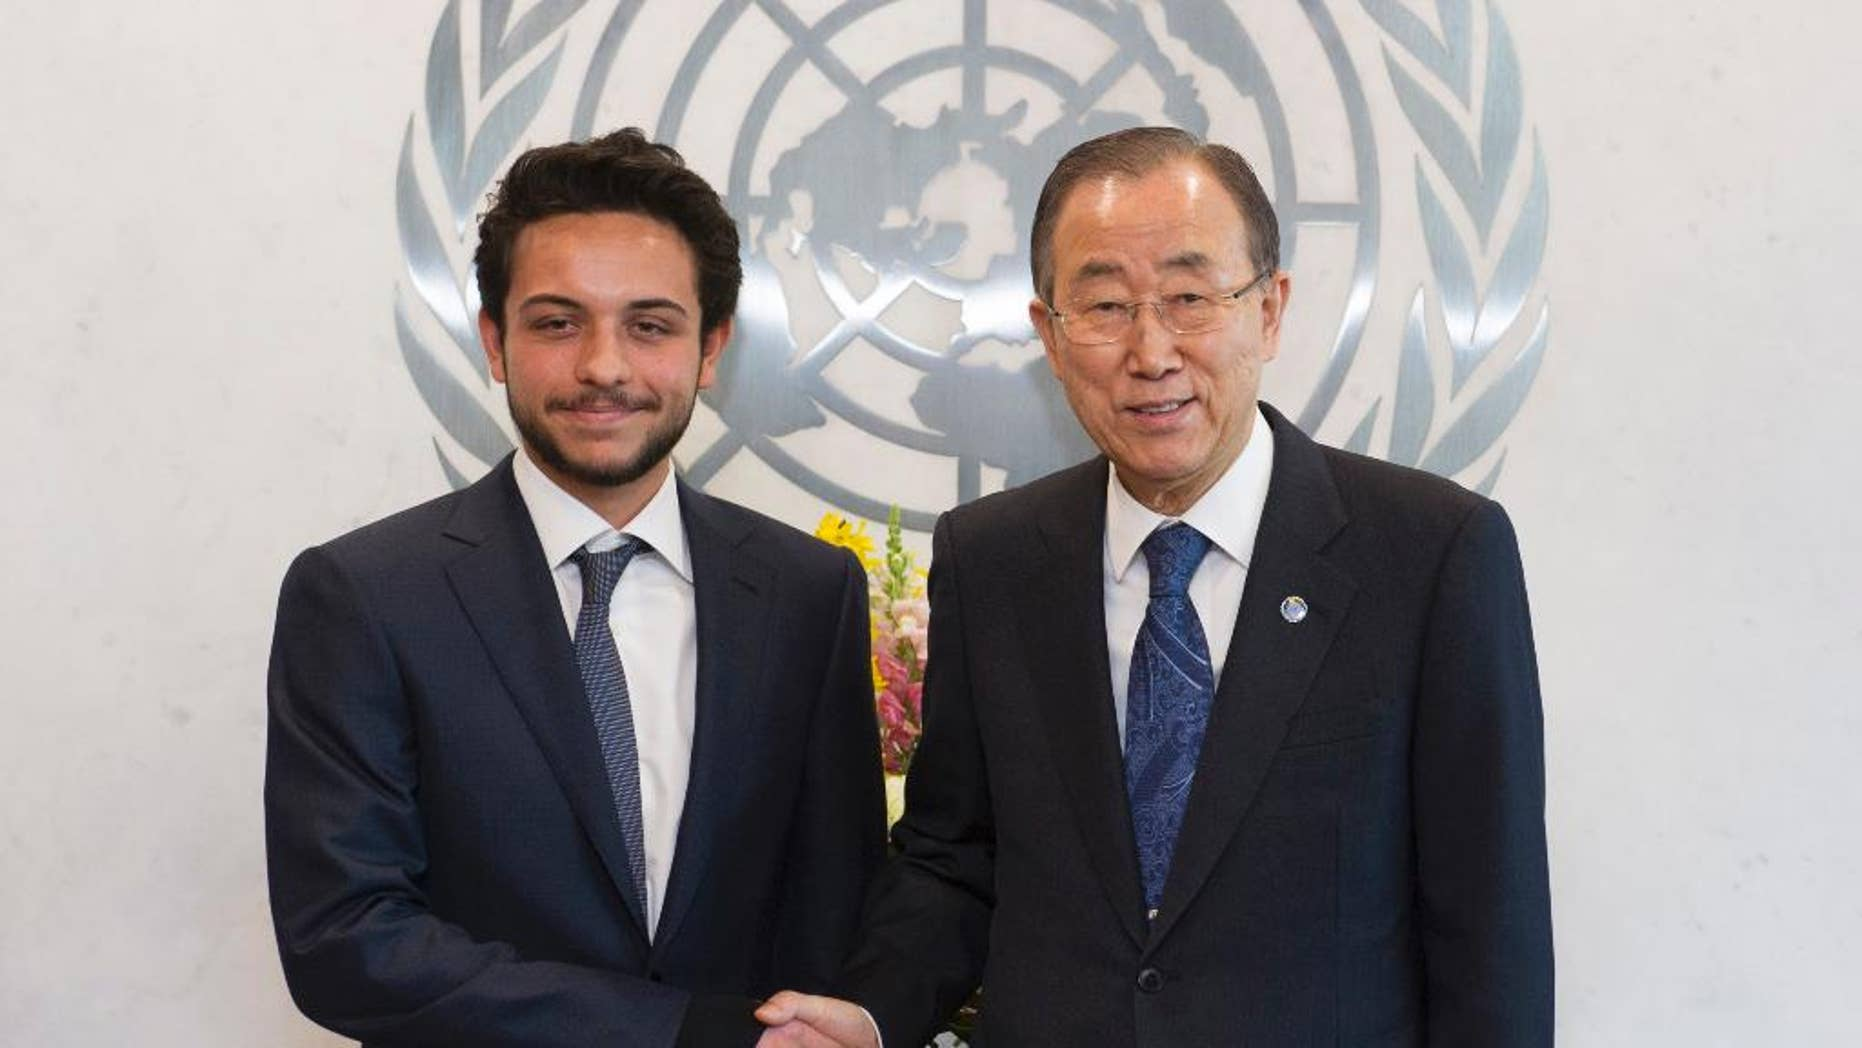 In this photo provided by the United Nations, Crown Prince Al Hussein Bin Abdullah II, Hashemite Kingdom of Jordan, left, shakes hands with United Nations Secretary General Ban Ki-moon at United Nations headquarters, Thursday, April 23, 2015. On Thursday, Jordan's 20-year-old crown prince became the youngest person ever to chair a meeting of the U.N. Security Council. (Mark Garten/The United Nations via AP)